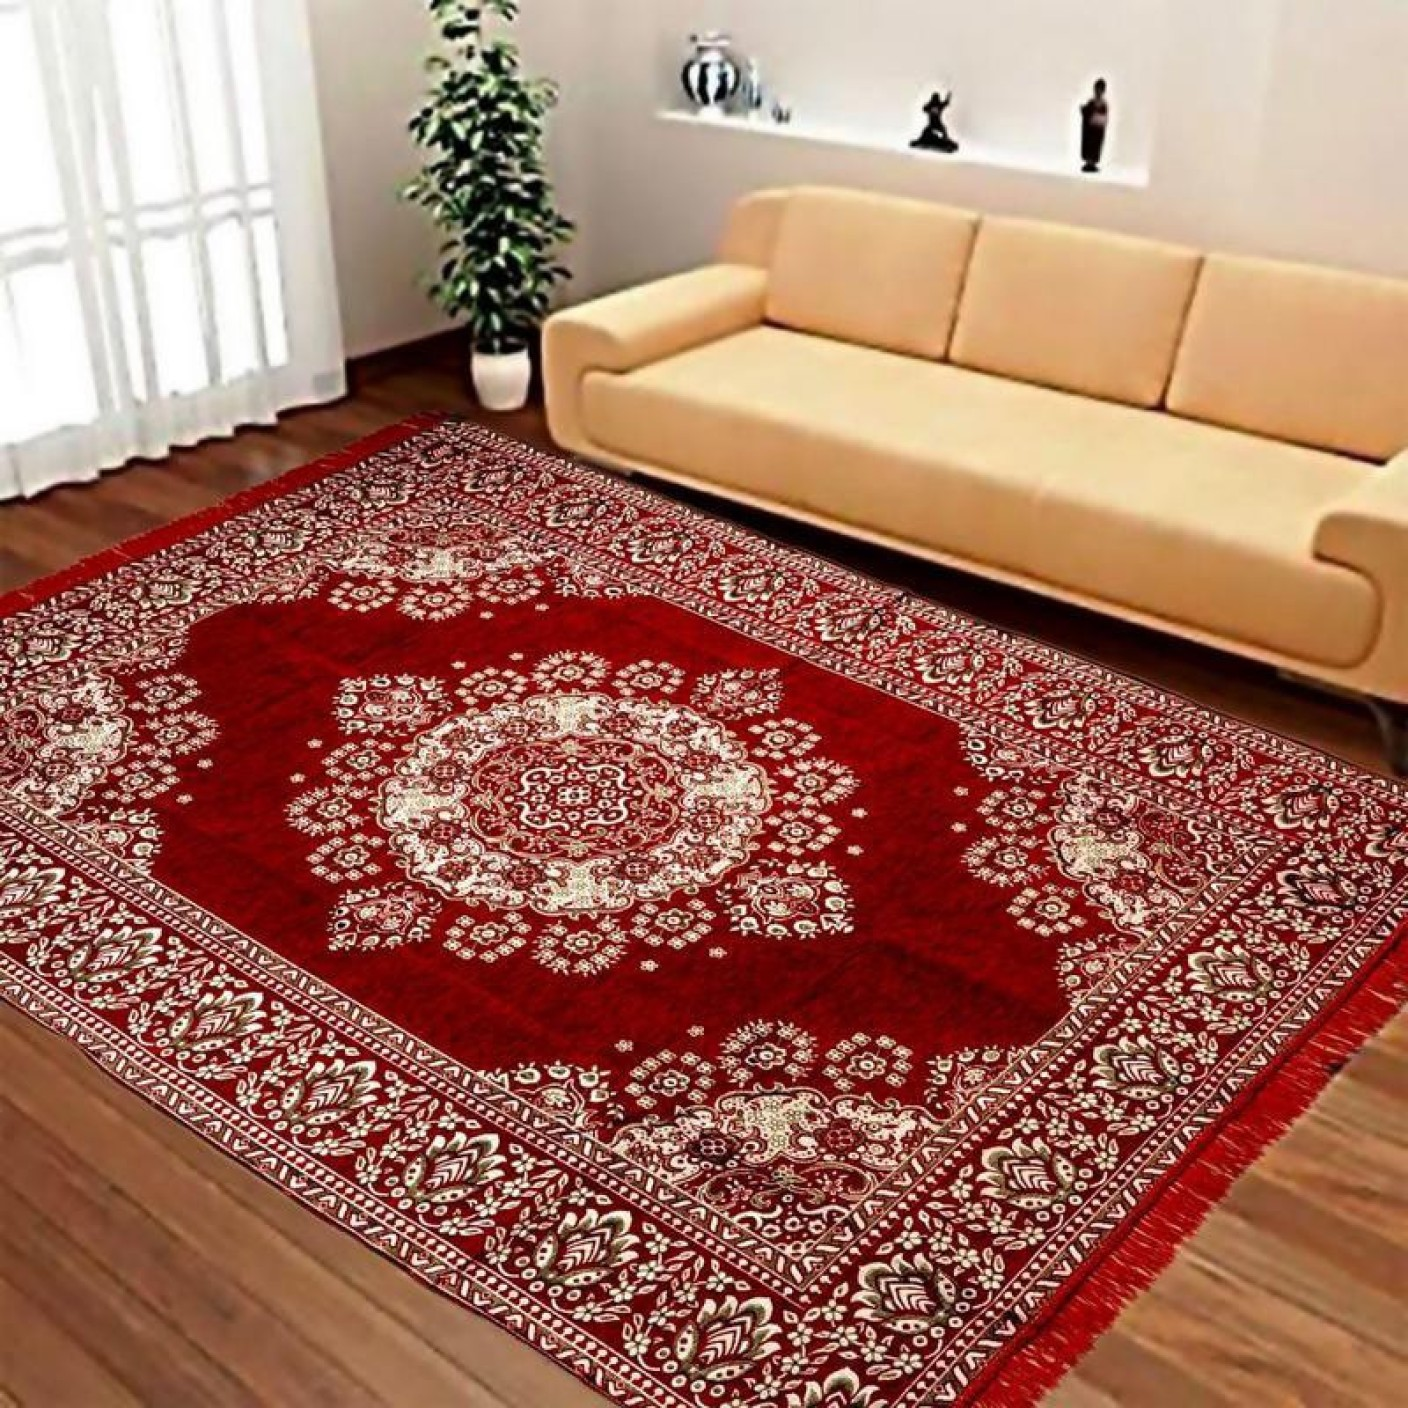 Kh multicolor velvet carpet buy kh multicolor velvet for Best place to buy rugs online